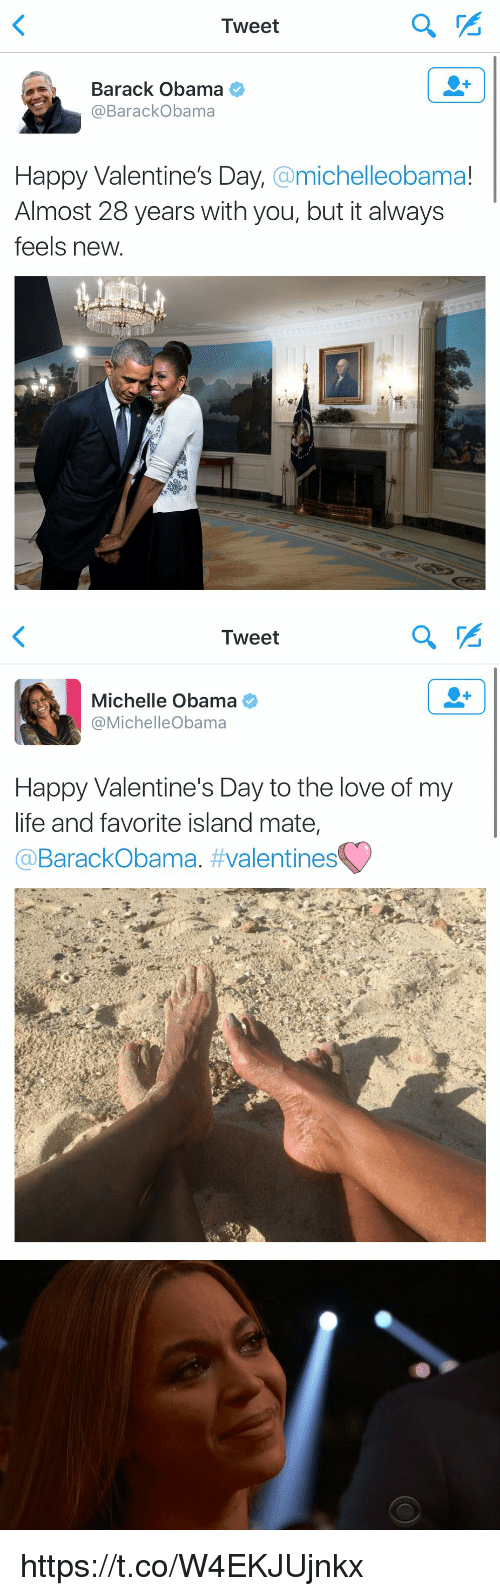 Funny, Michelle Obama, and Island: Tweet  Barack Obama  @Barack Obama  Happy Valentine's Day.  a michelleobama!  Almost 28 years with you, but it always  feels new   Tweet  Michelle Obama  Michelle Obama  Happy Valentine's Day to the love of my  life and favorite island mate  BarackObama  valentines   C) https://t.co/W4EKJUjnkx